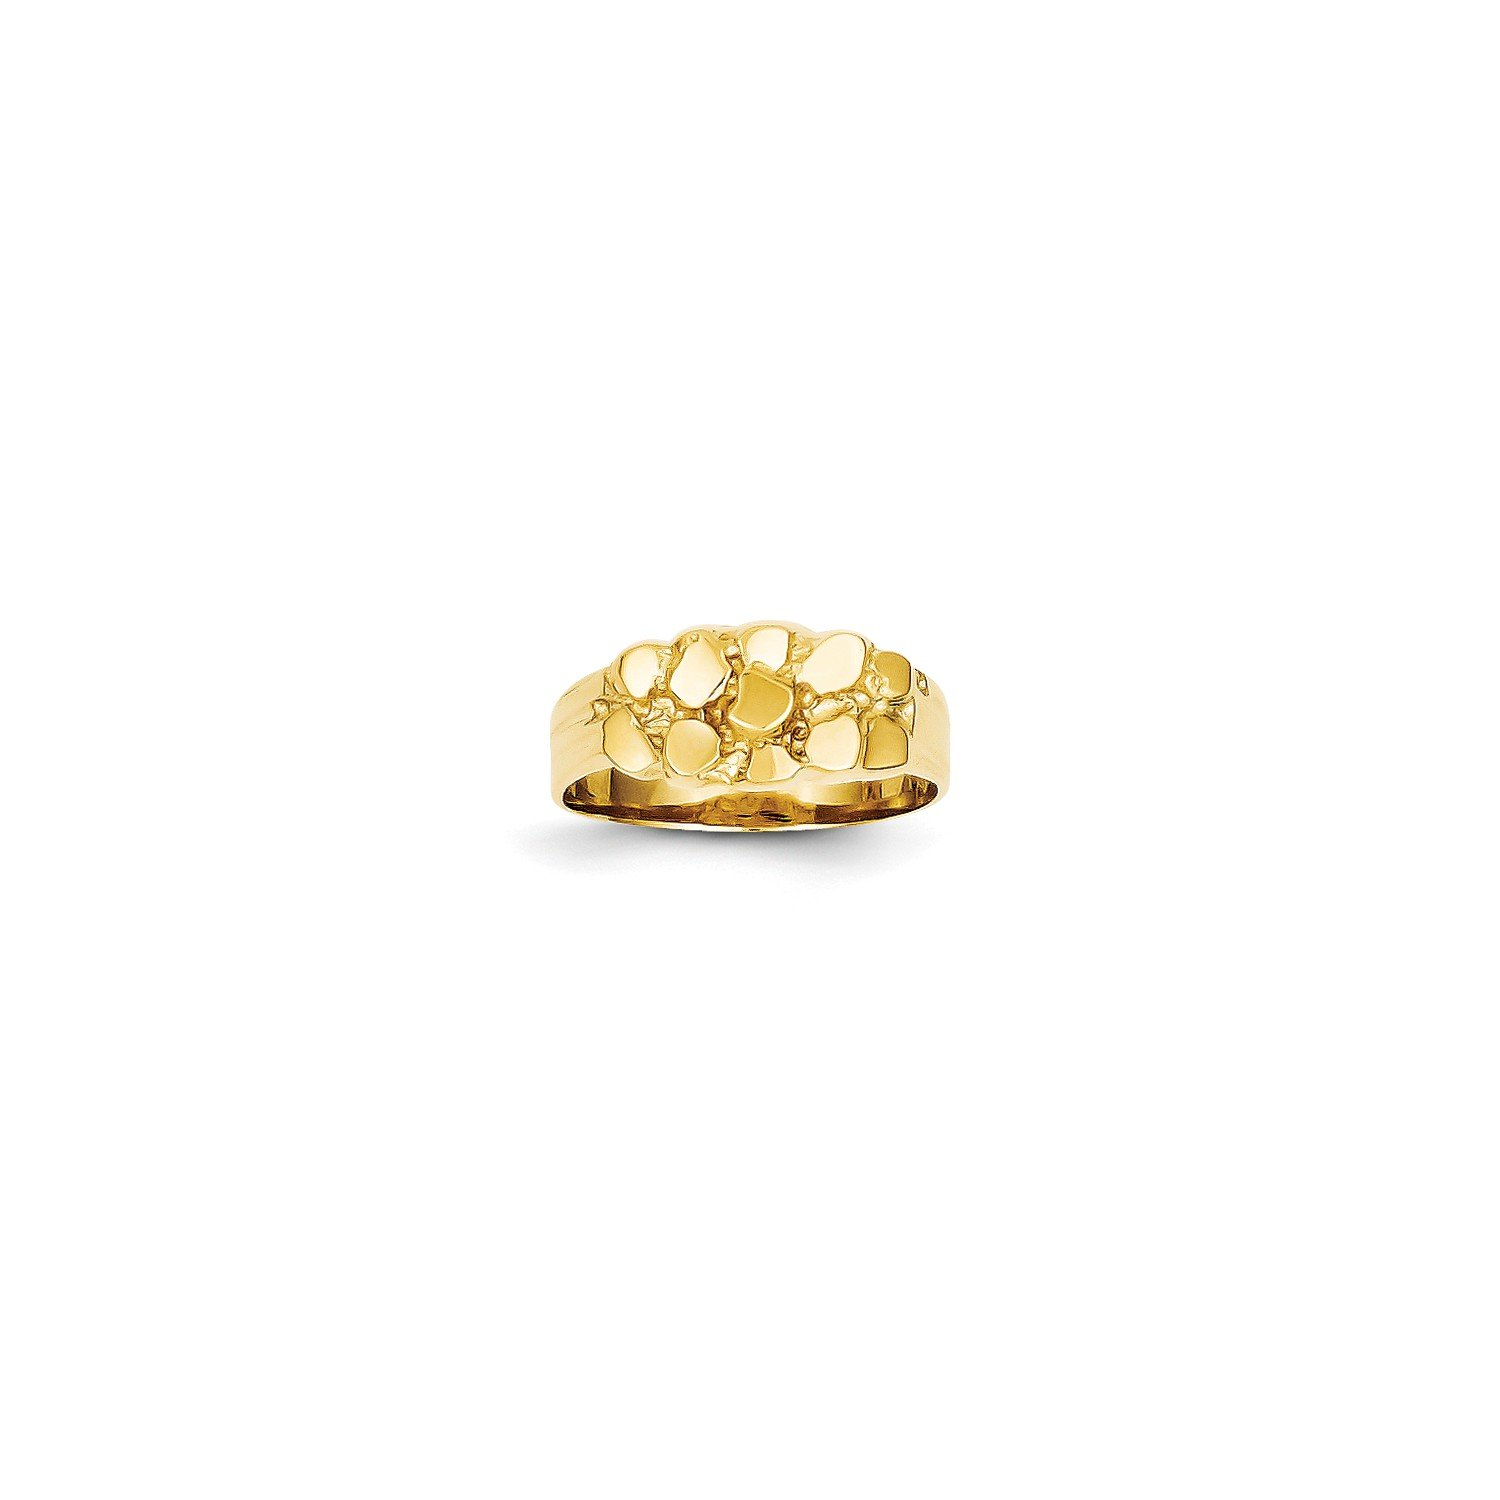 Roy Rose Jewelry 14K Yellow Gold 8mm Wide Nugget Ring , Size - 6